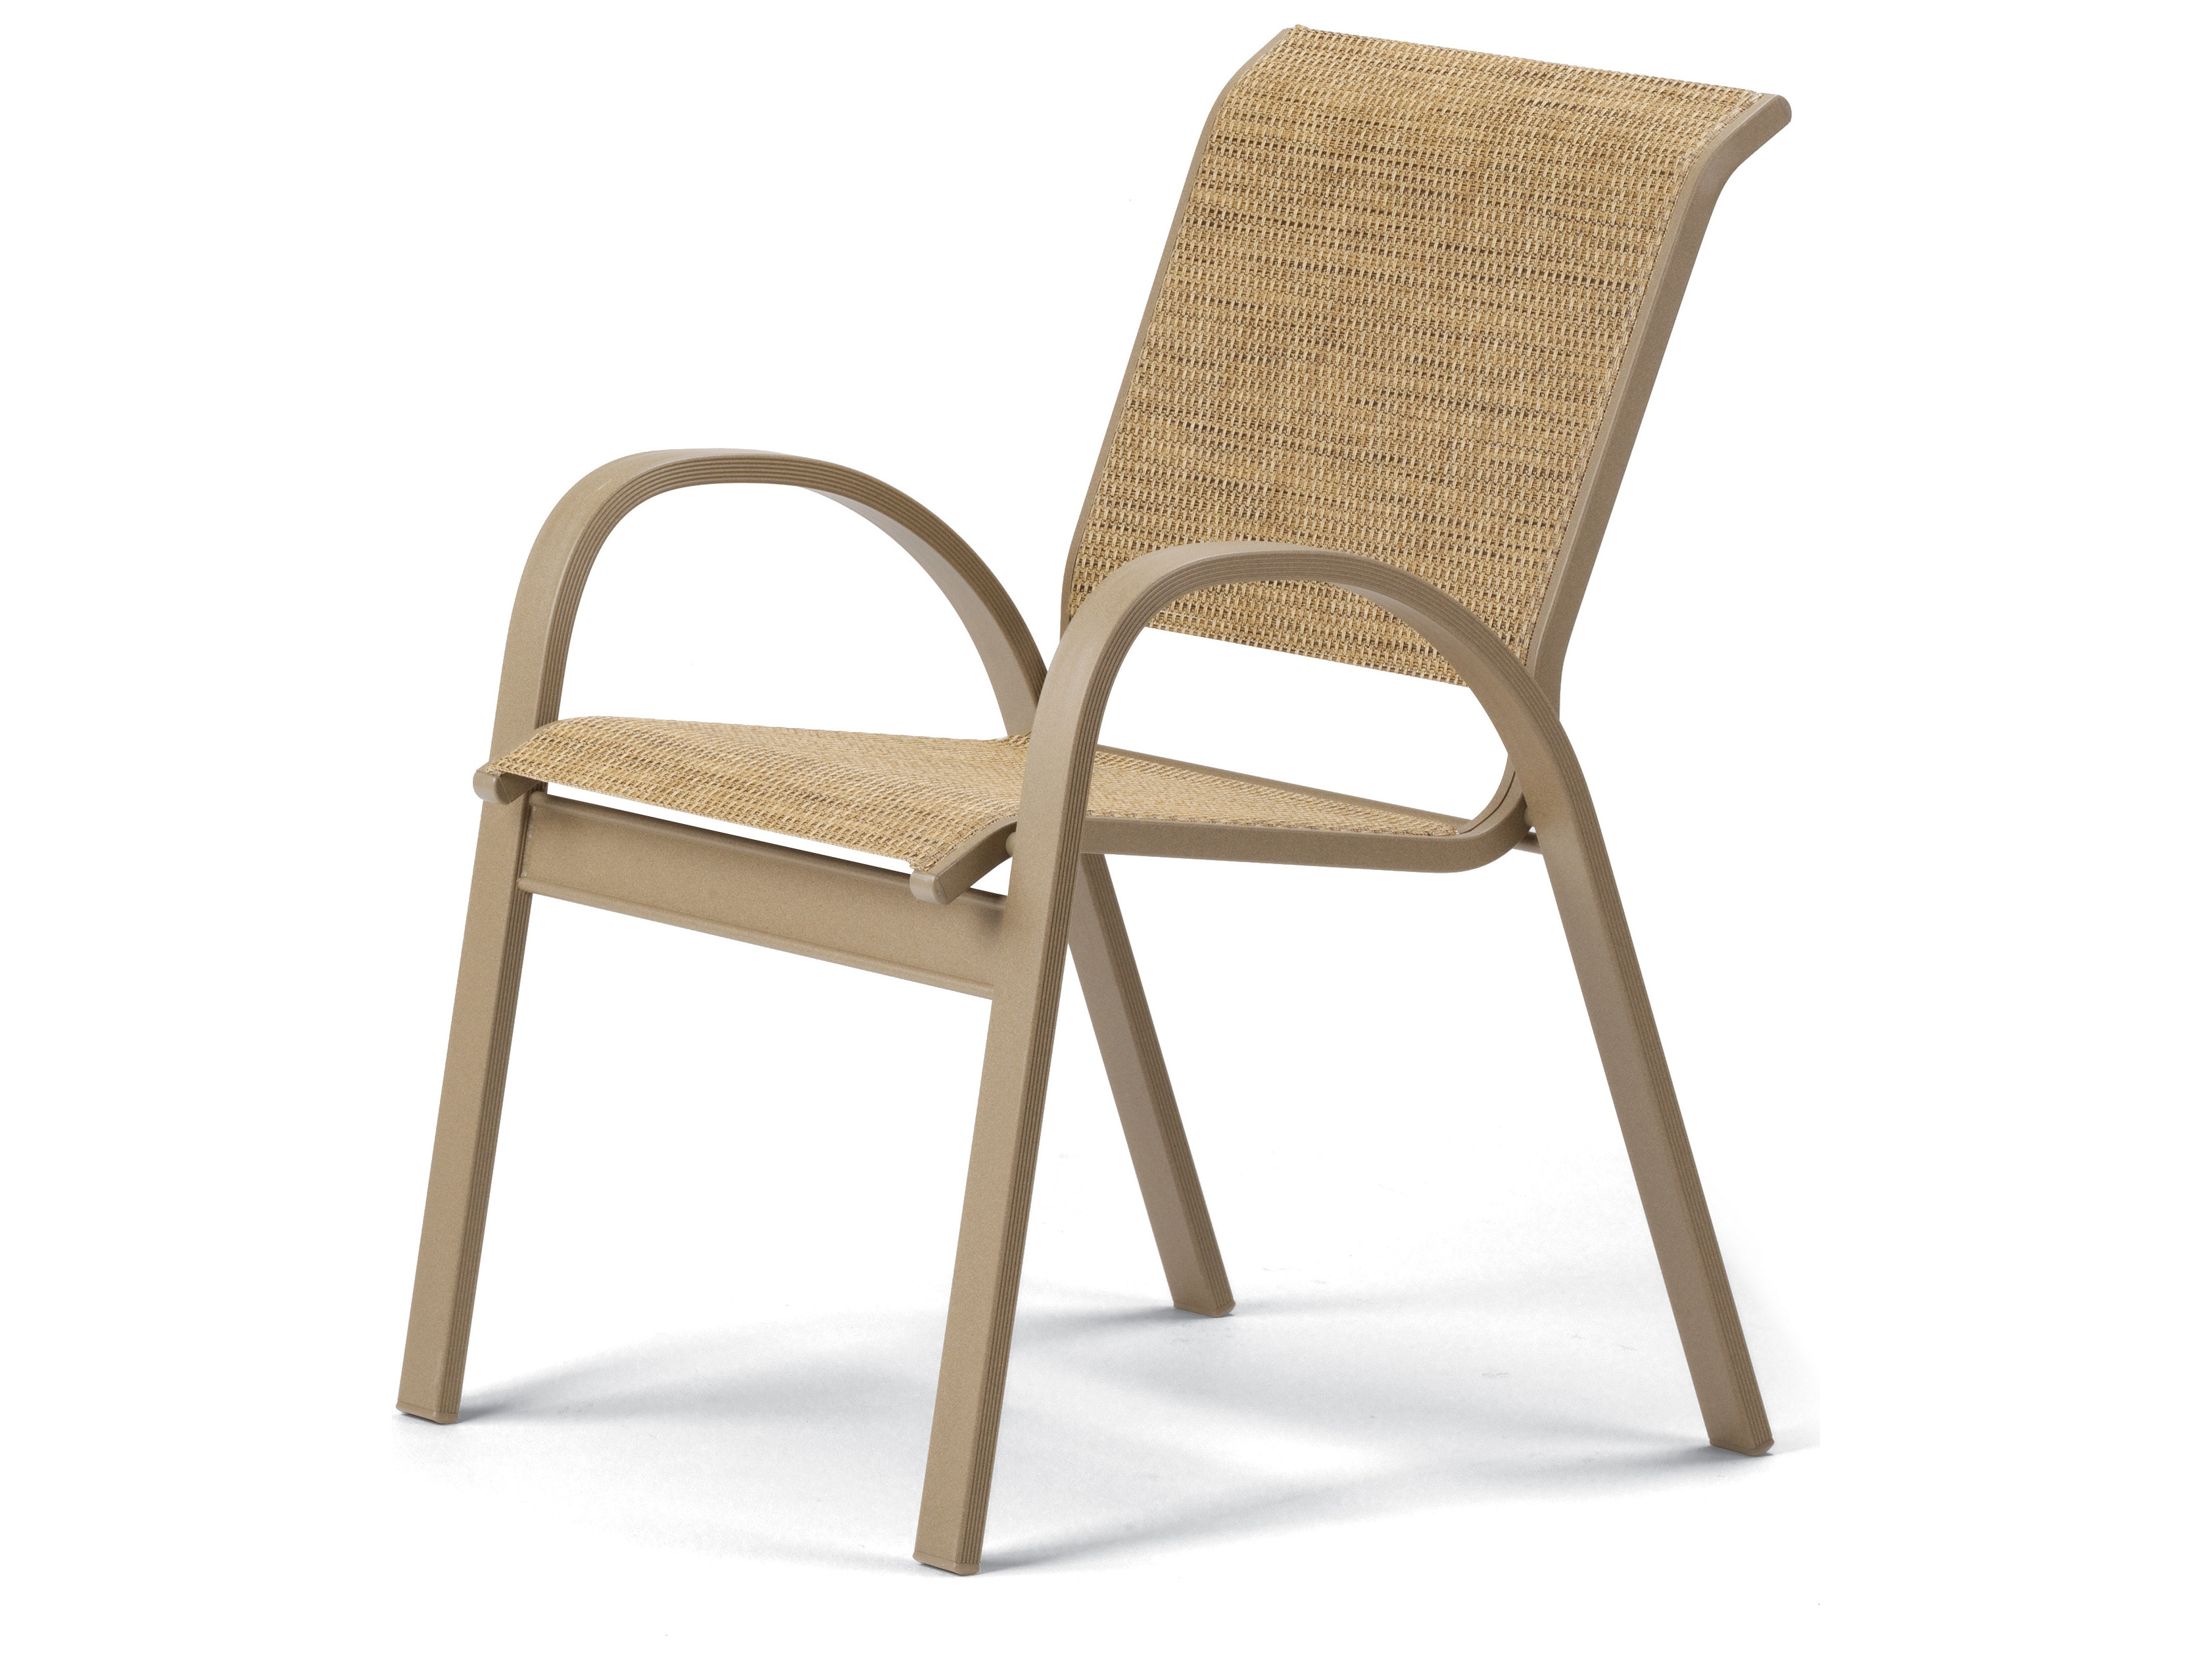 Sling Patio Chairs & Outdoor Sling Chairs PatioLiving